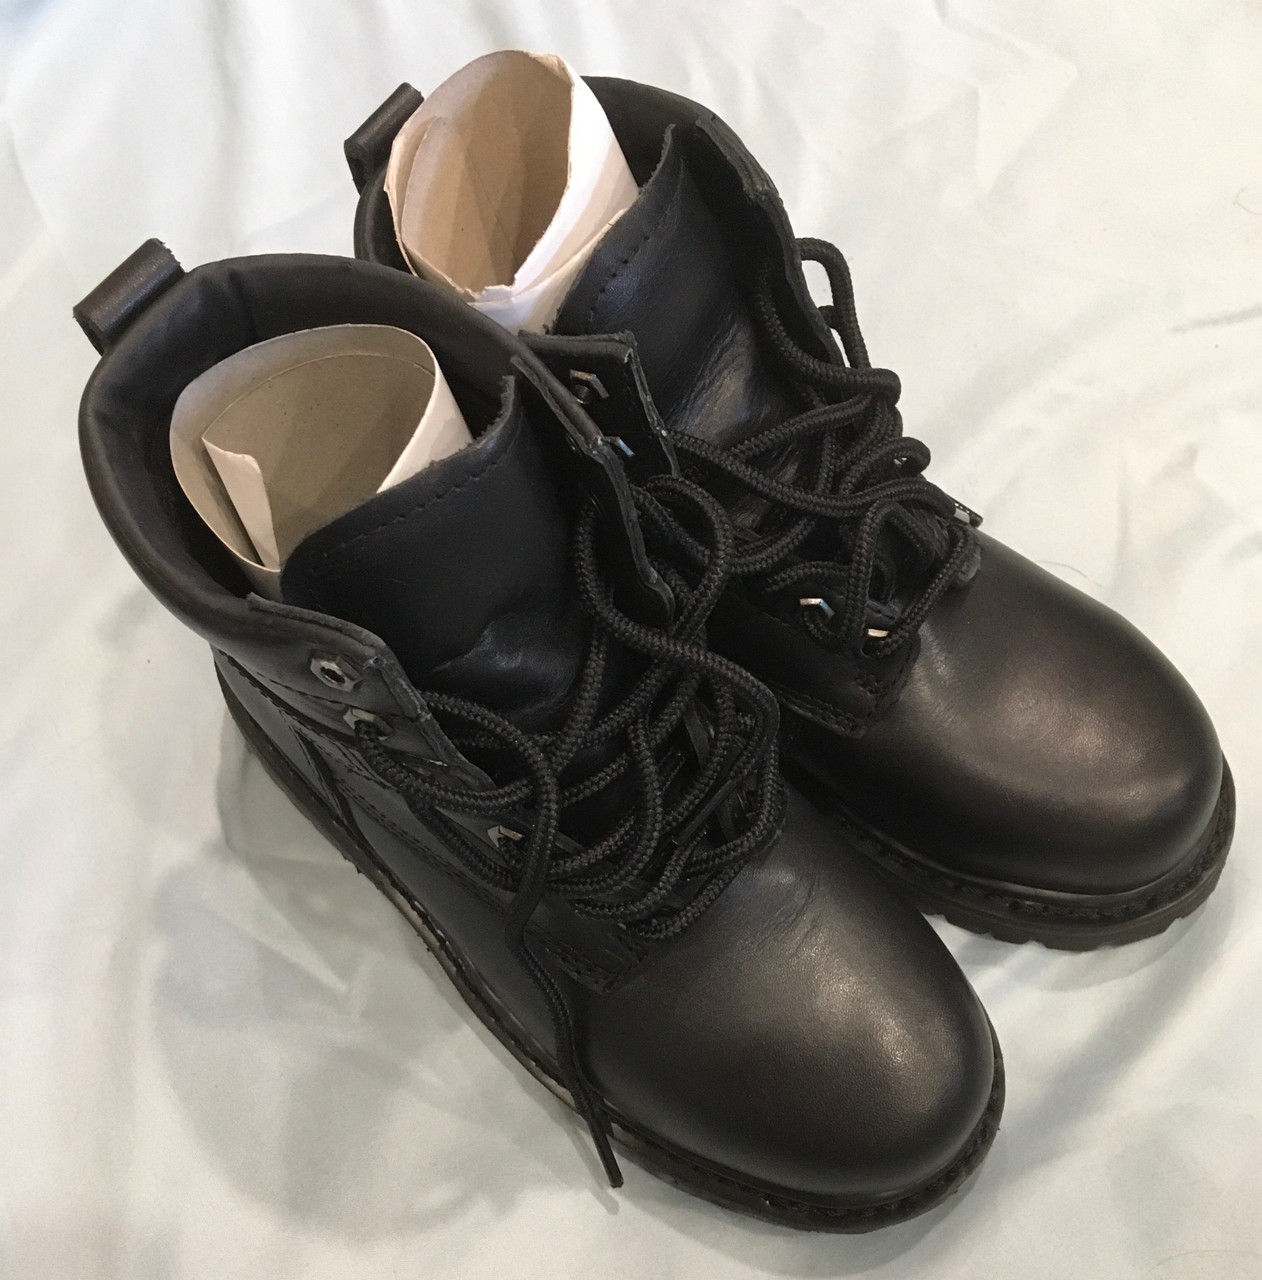 New! Mens Steel Toe Boots Size 4W